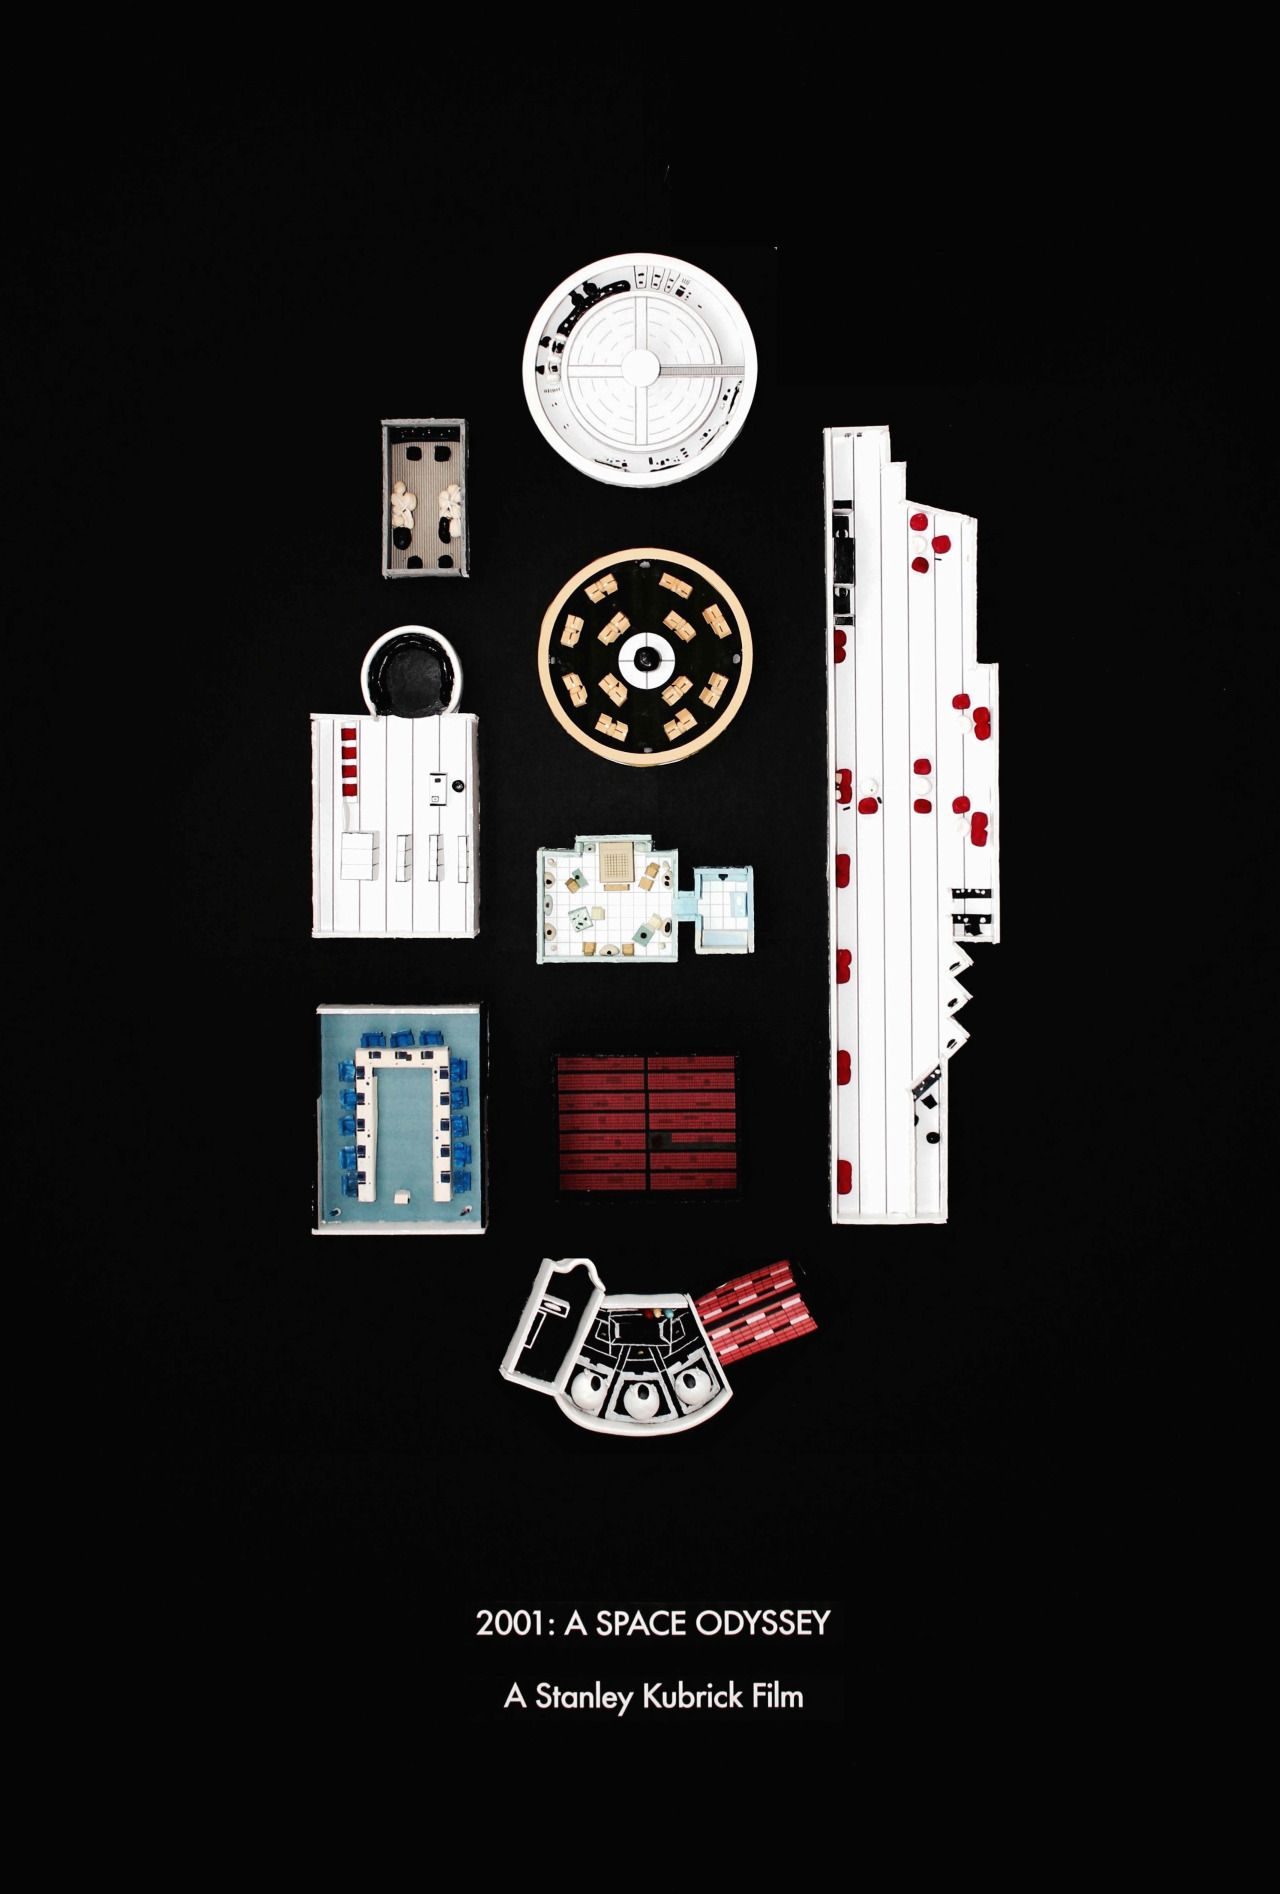 2001: A Space Odyssey by Jordan Bolton Made by recreating the film's set design in miniature